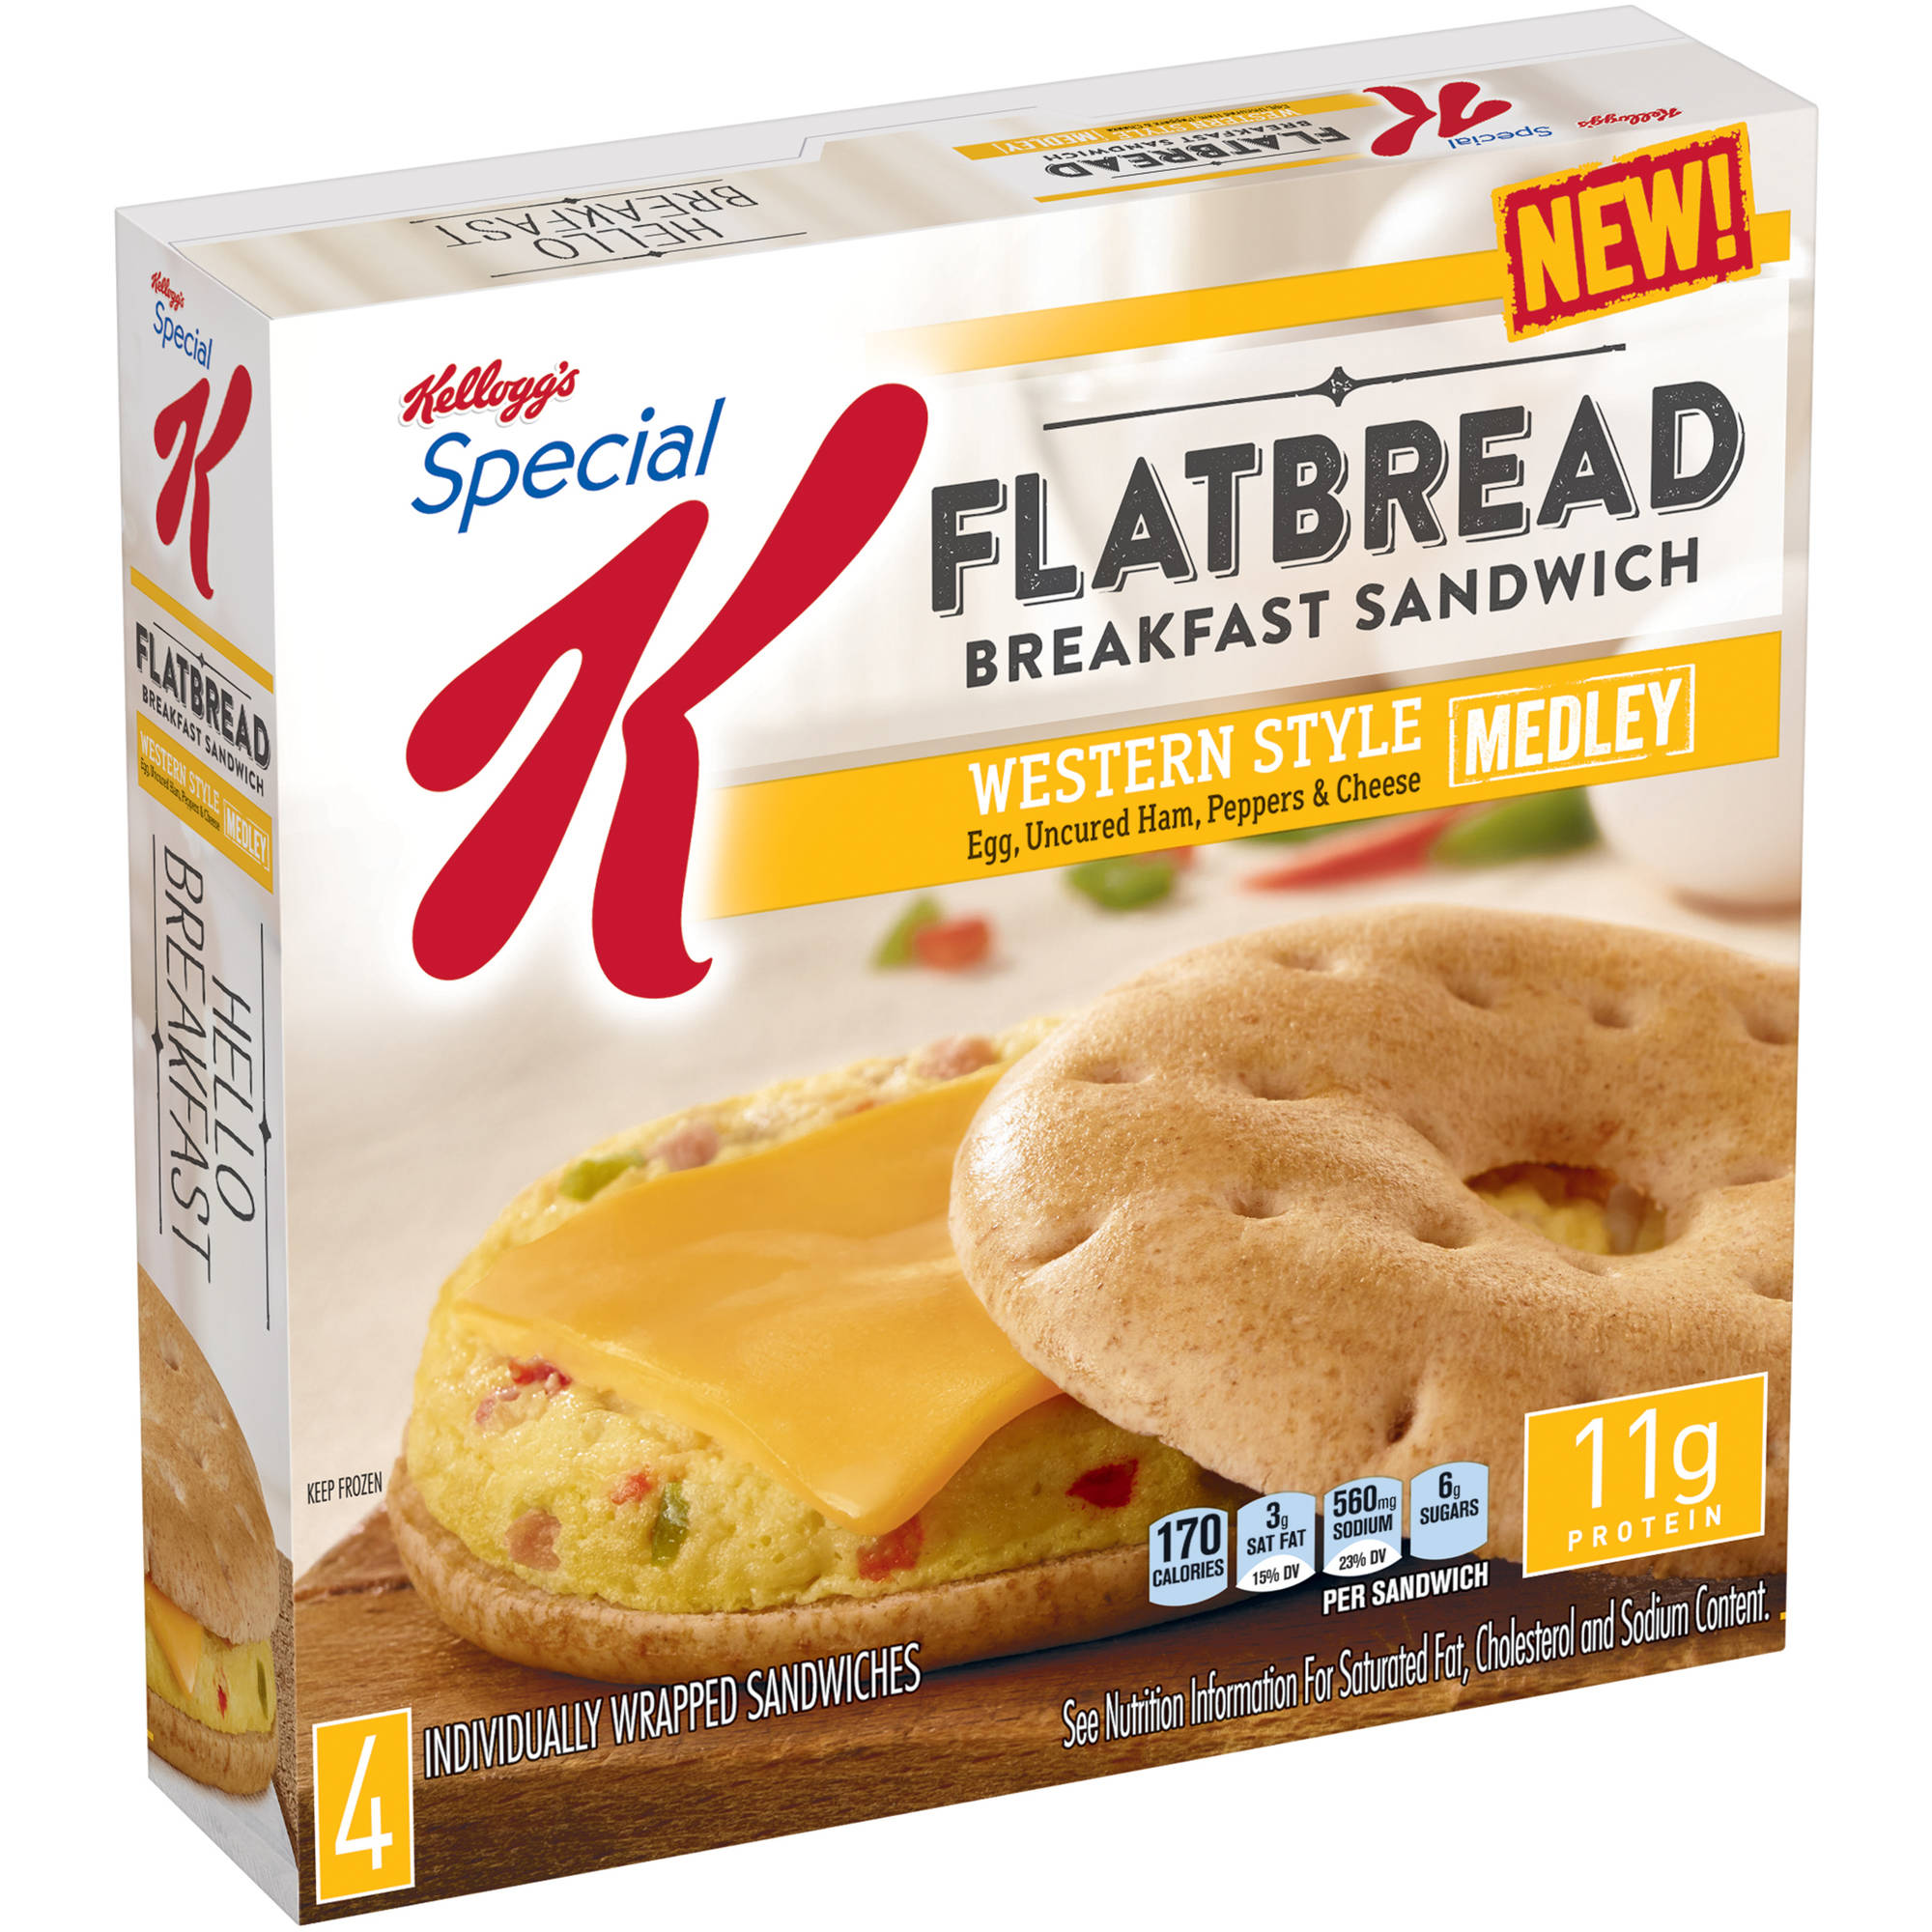 Kellogg's Special K Egg, Uncured Ham, Peppers & Cheese Medley Flatbread Breakfast Sandwiches, 4 count, 13.4 oz